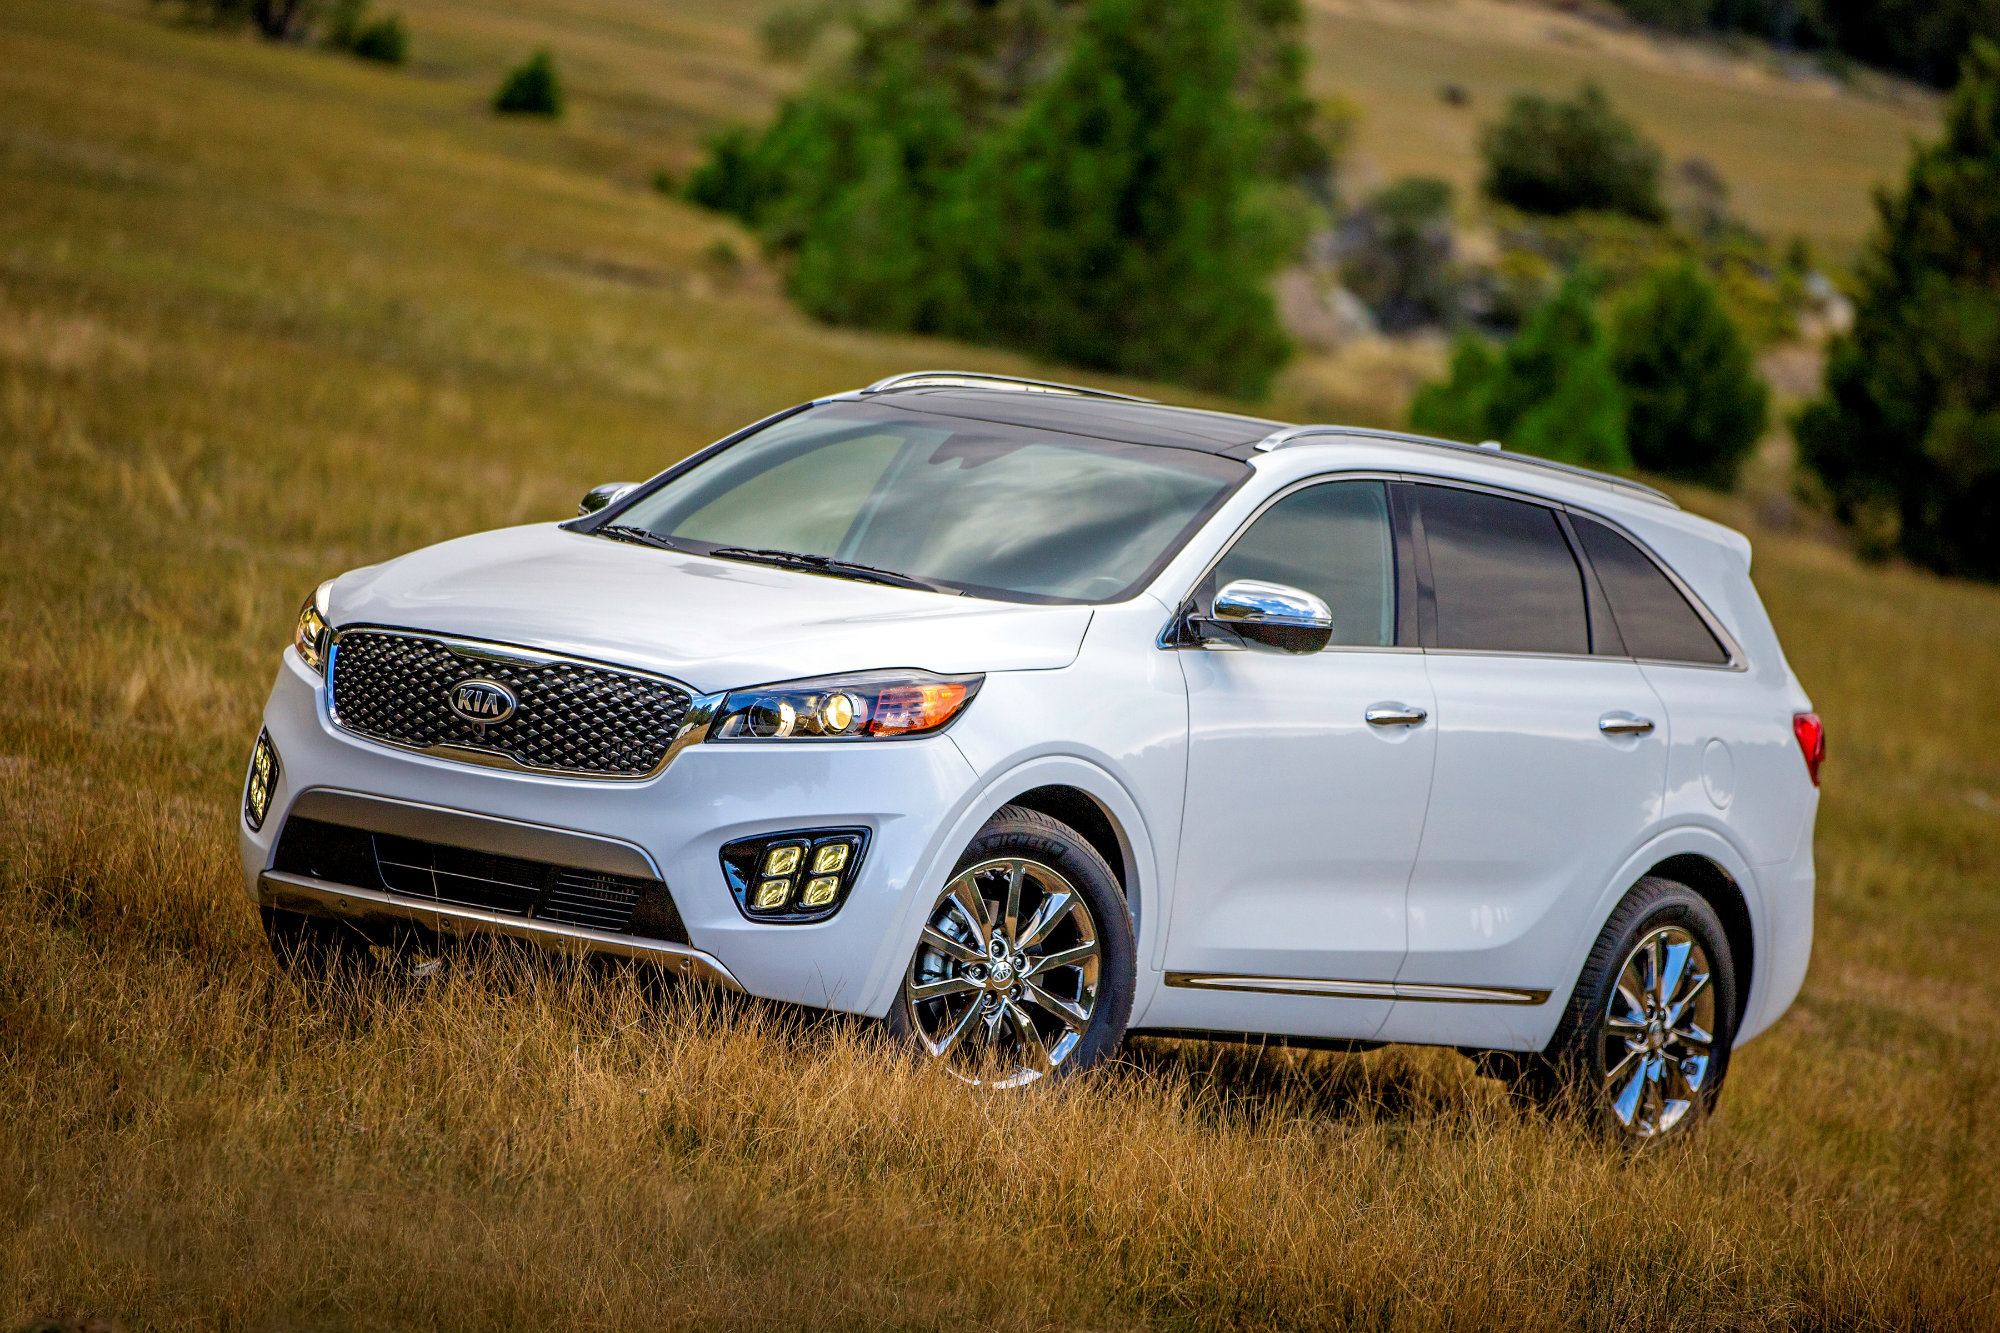 lx ratings drive awd wheel photo sportage front price photos new safety reviews kia suv